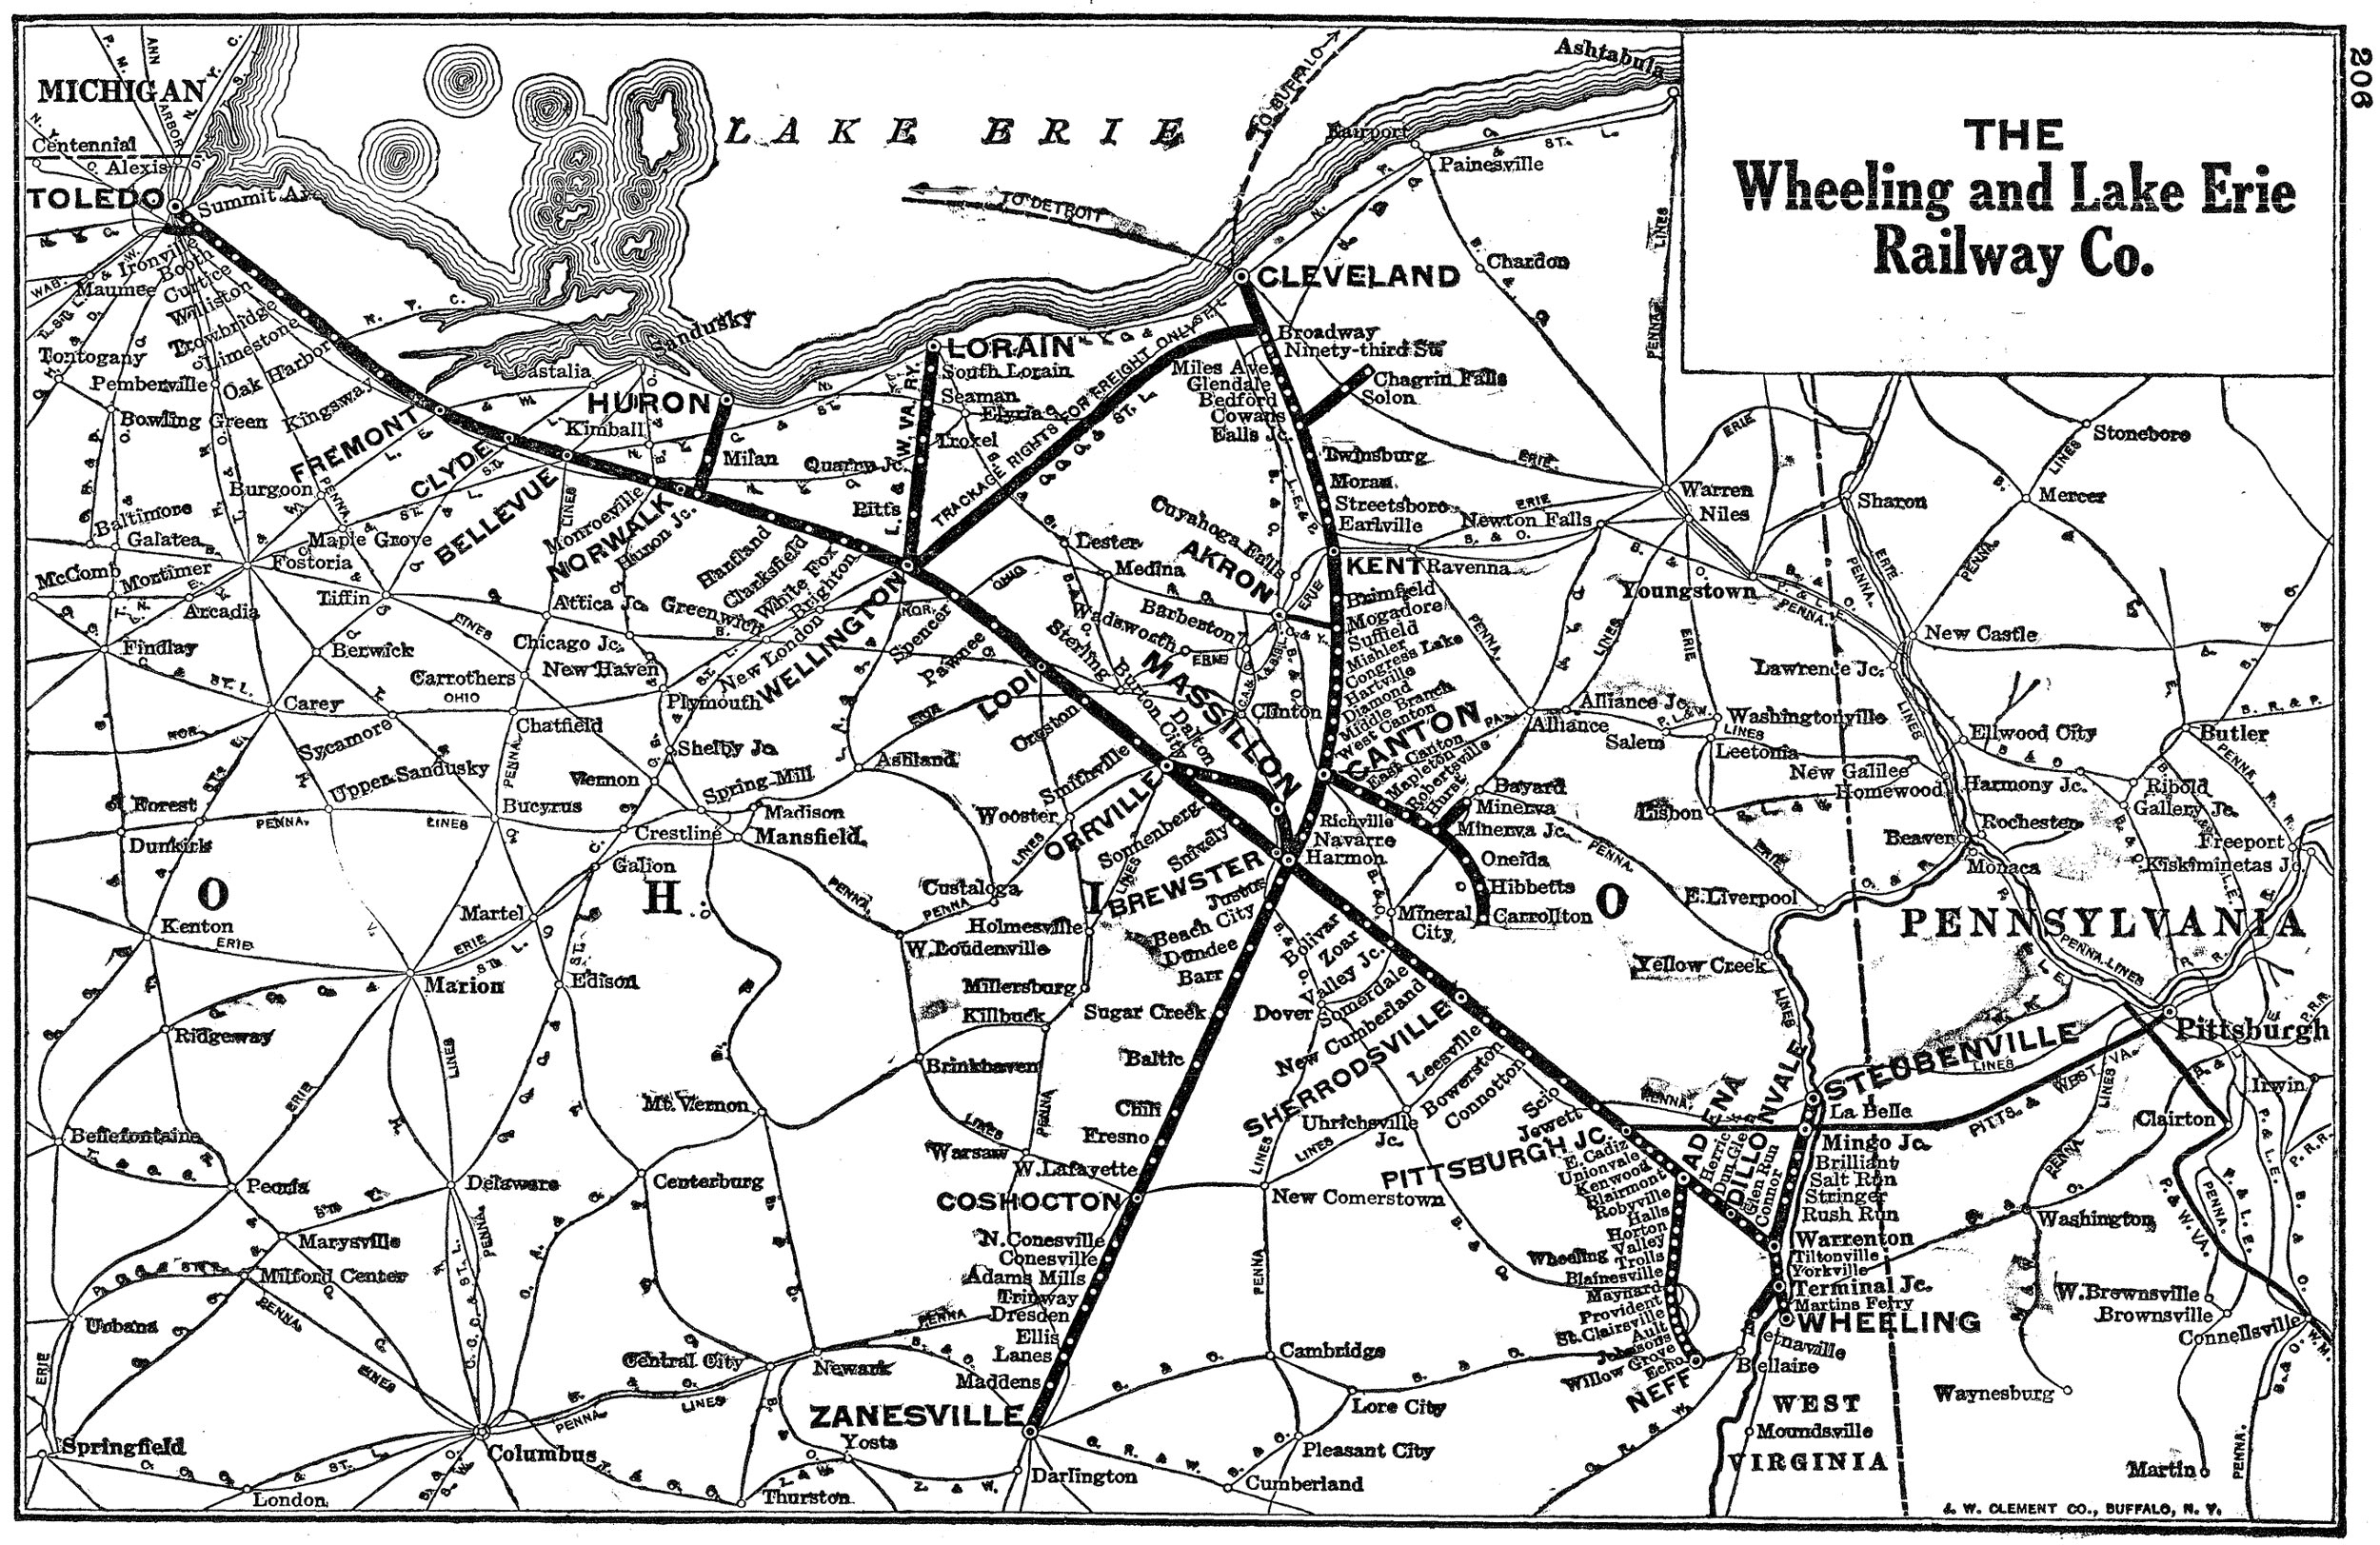 The Wheeling and Lake Erie Railway